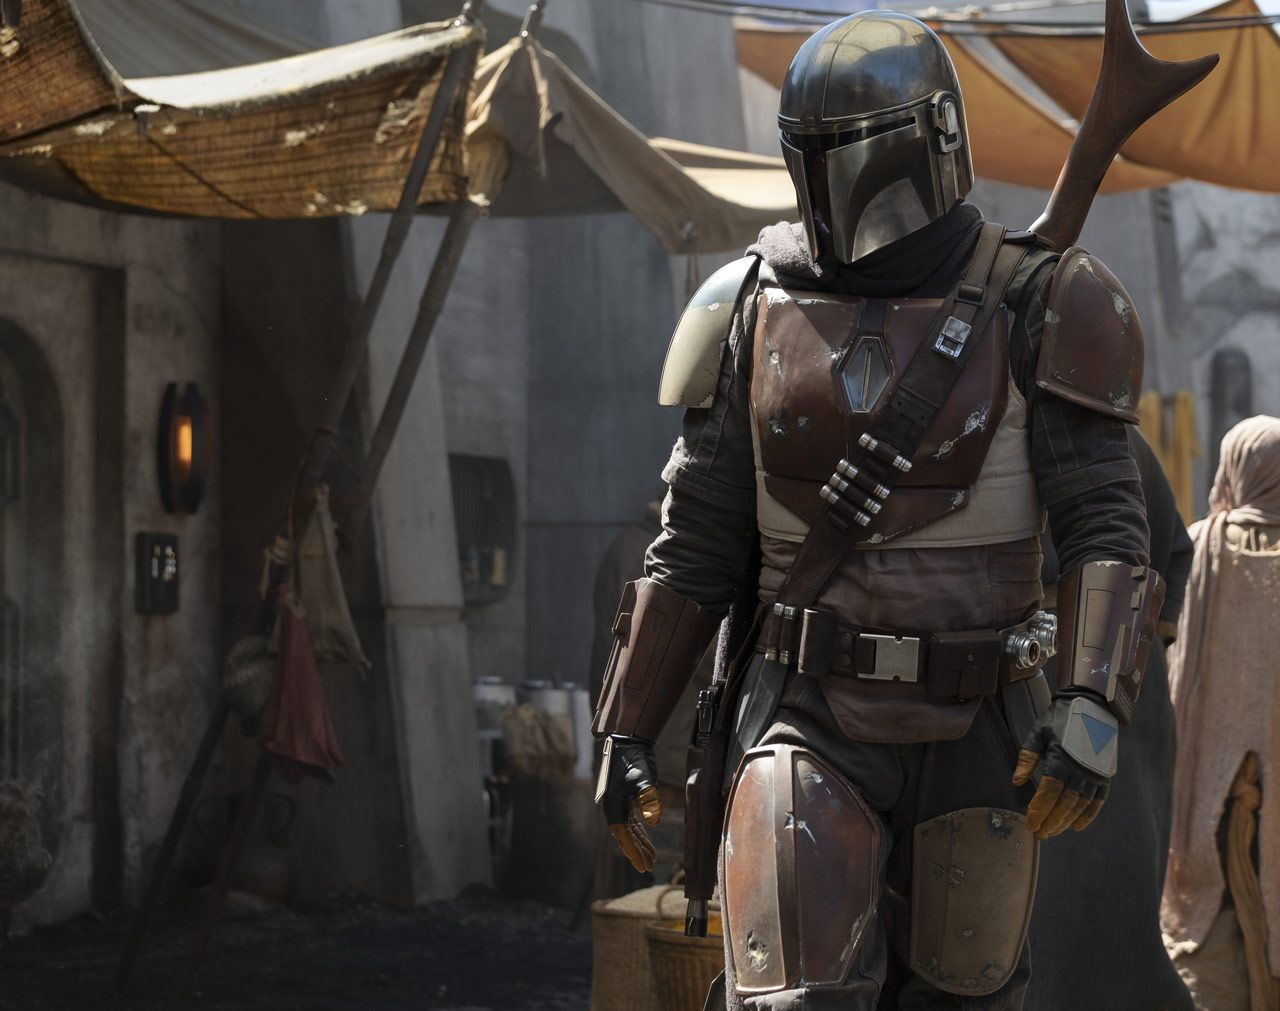 Star Wars TV series The Mandalorian reveals first photo